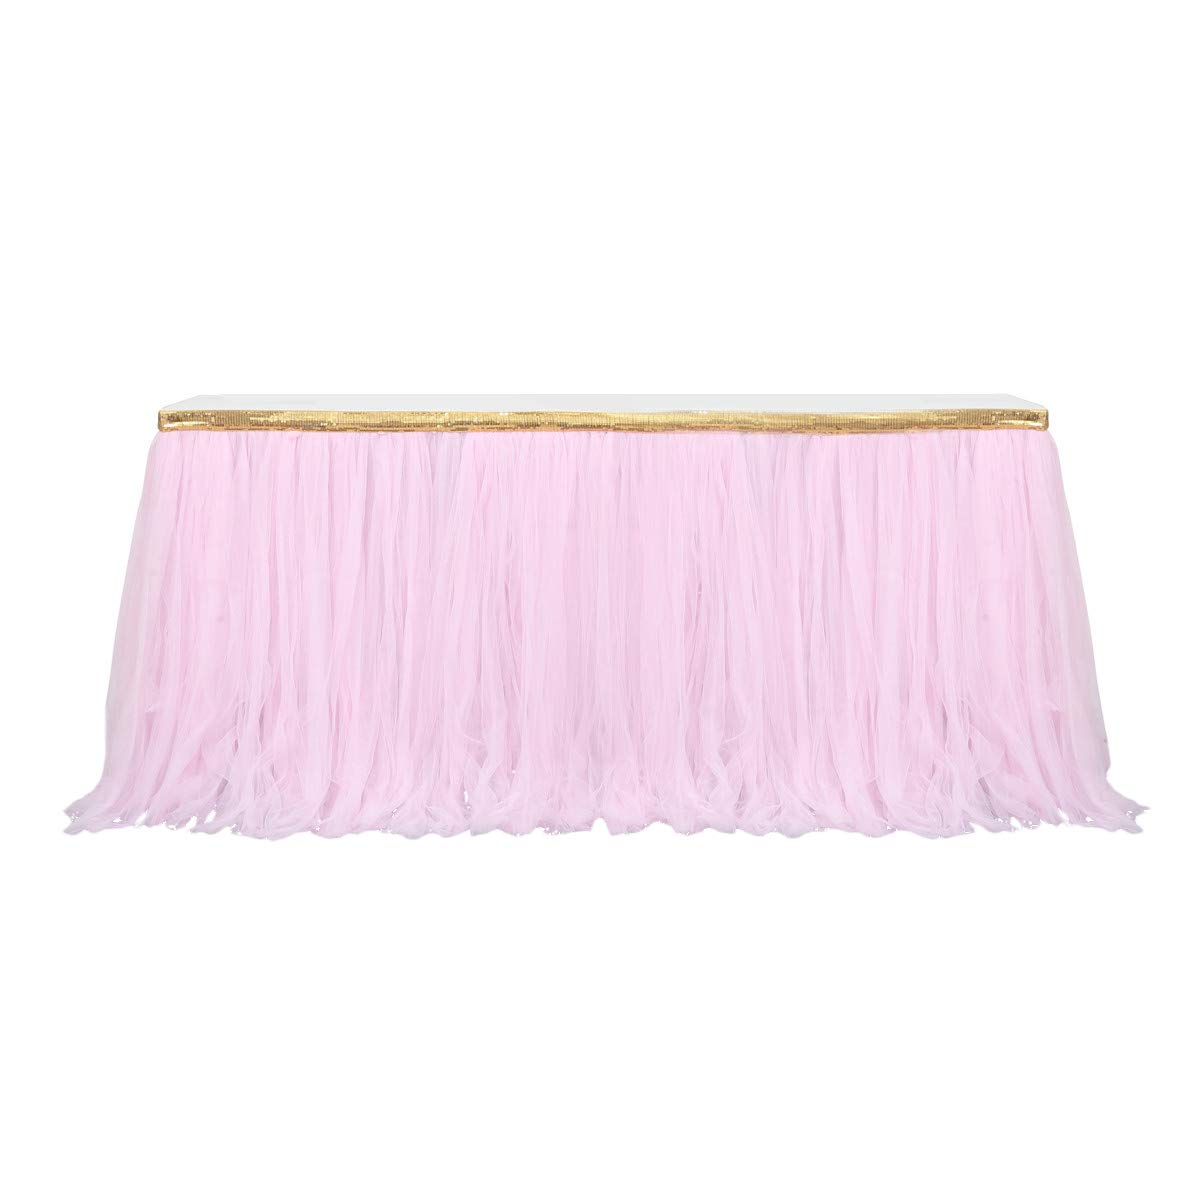 9ft Gold/Pink Tulle Table Skirt Tutu Table Skirts Wedding Birthday Baby Shower Party Table Skirting by HB HBB MAGIC (Image #1)